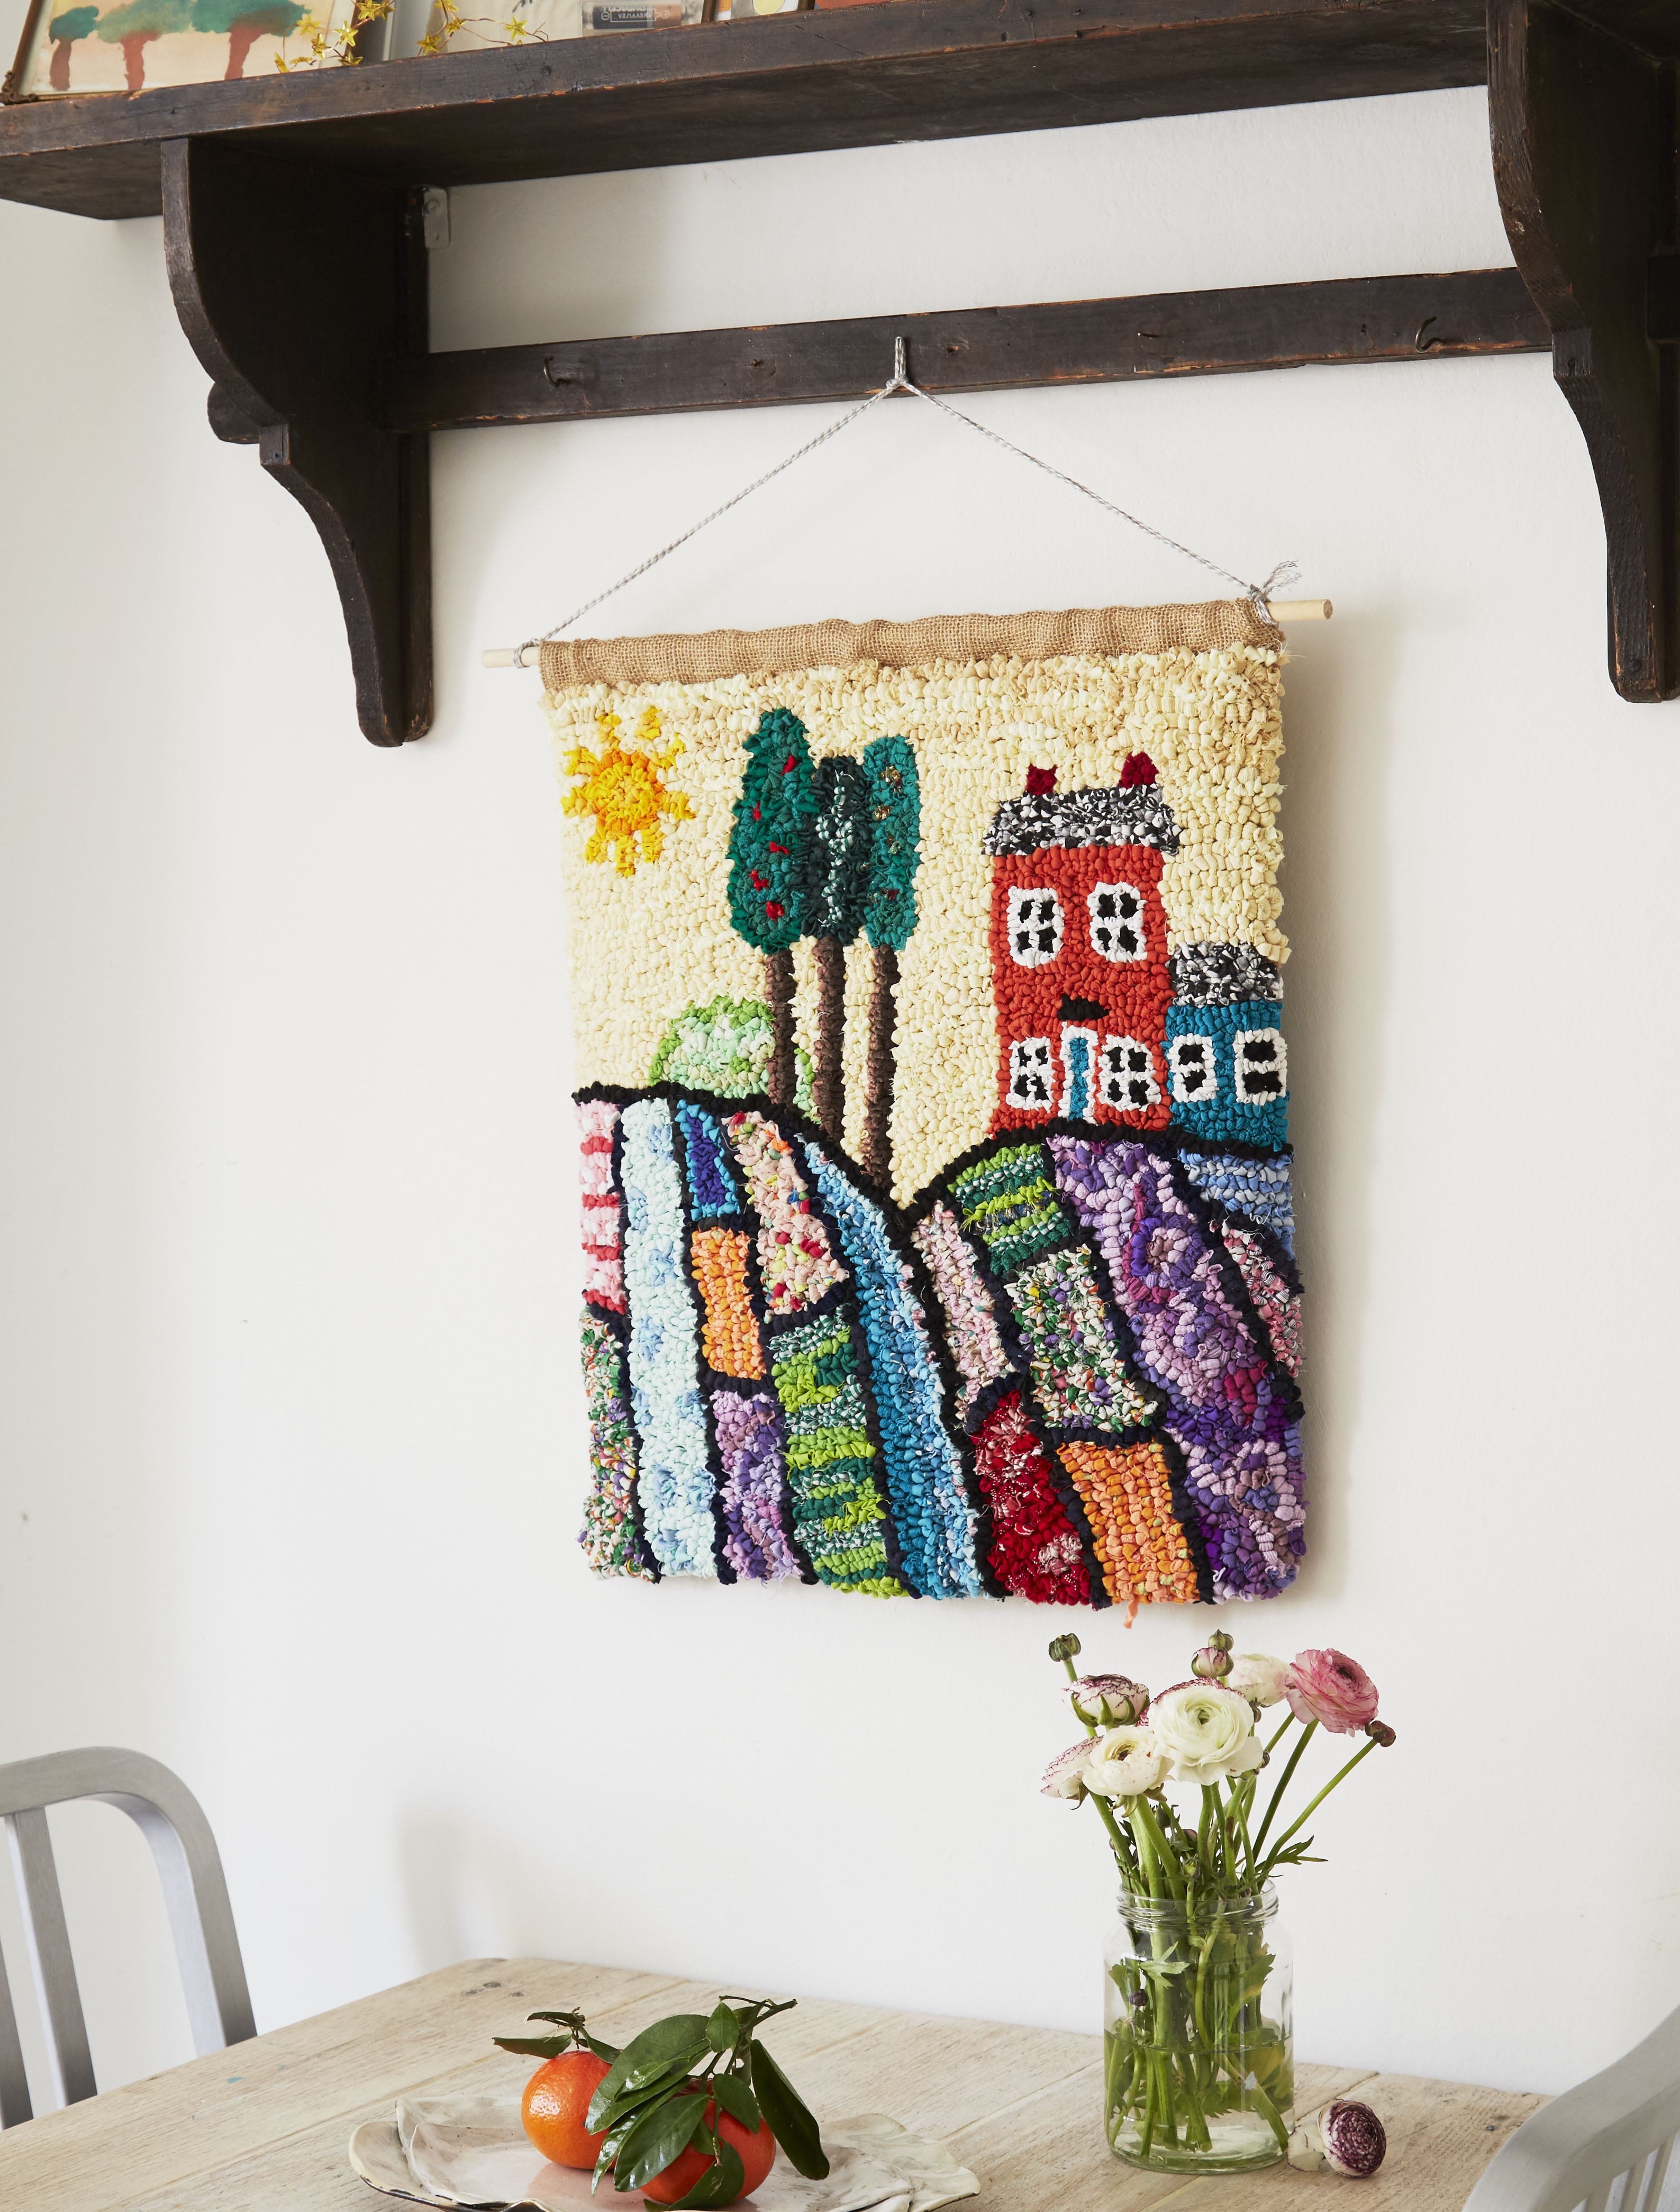 Folk Art Rag Rug Wall Hanging with Rolling Hills and Trees